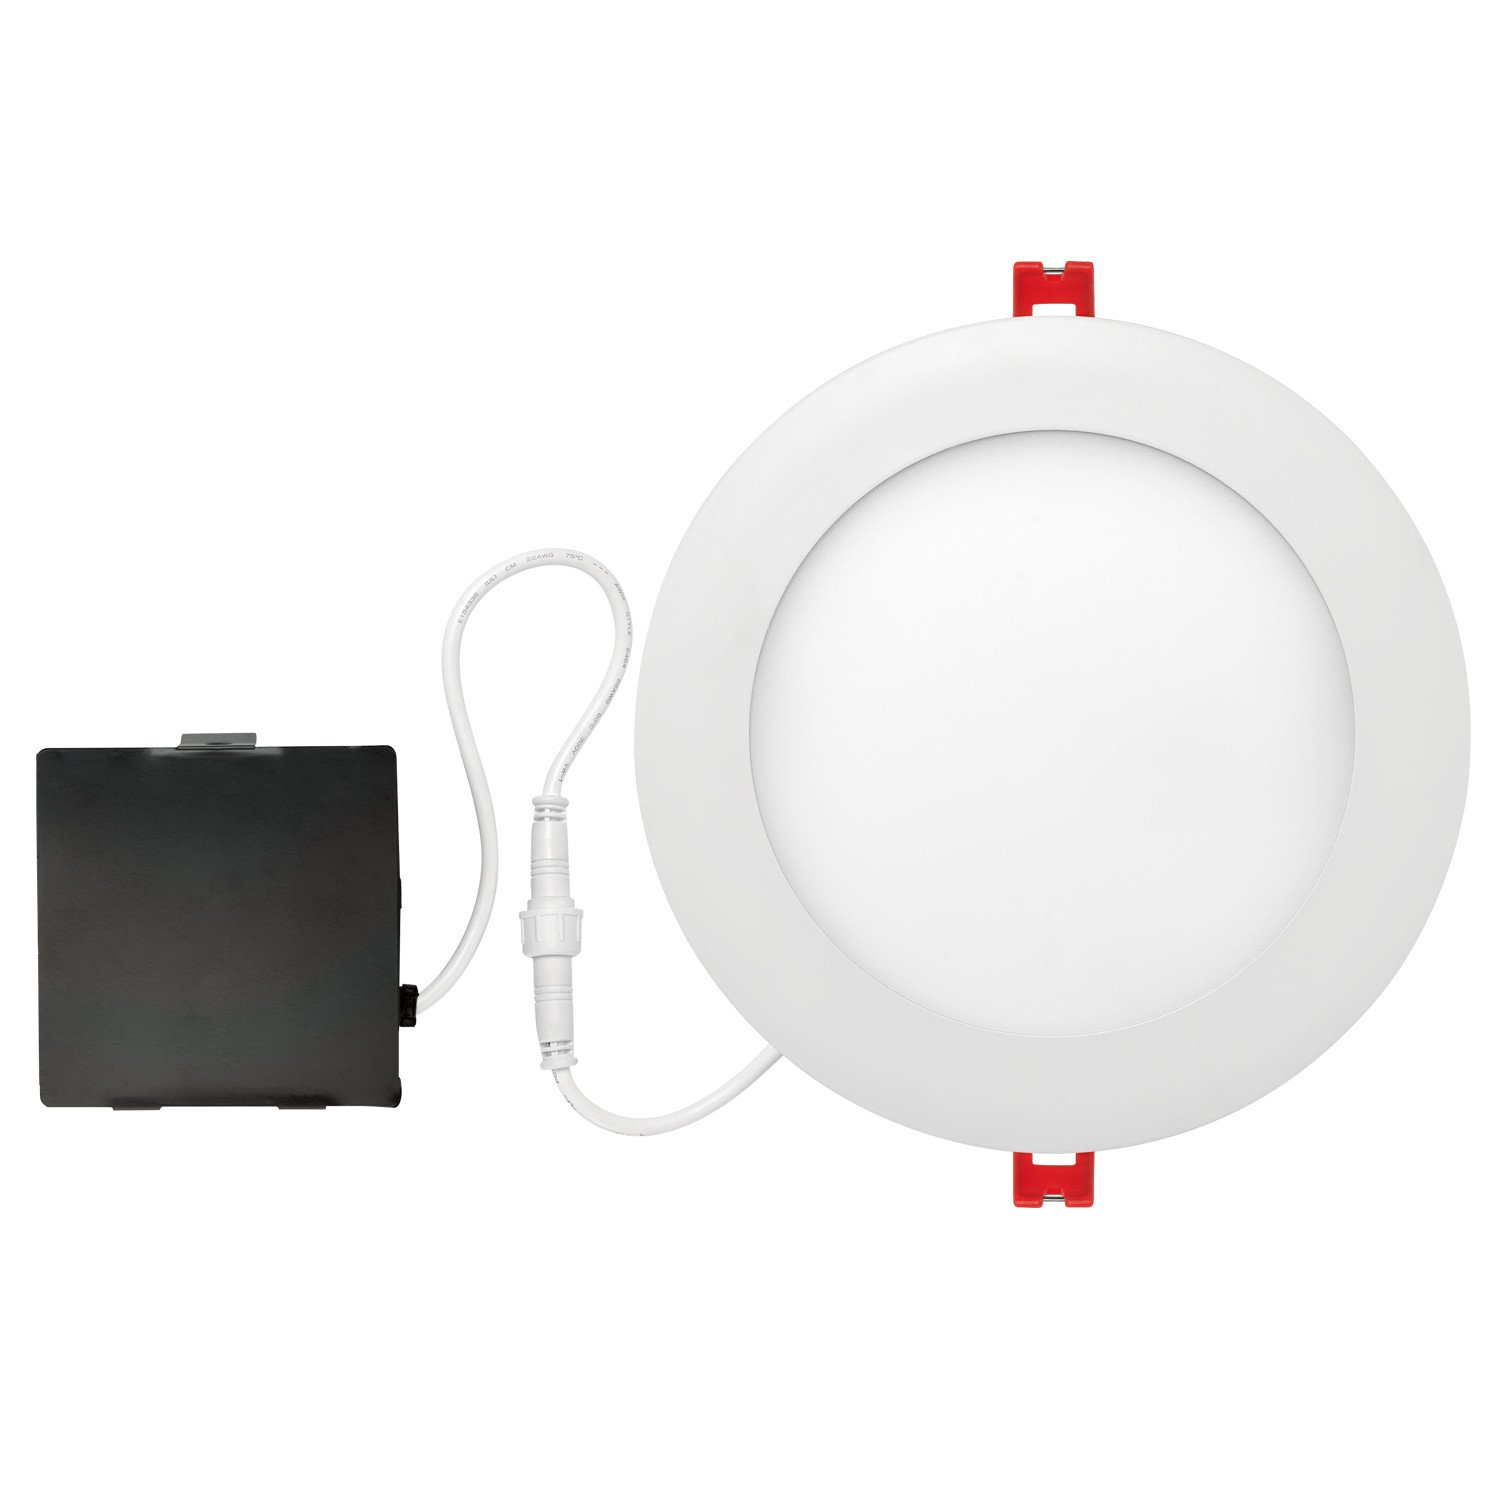 Globe Electric 6'' LED Integrated Ultra Slim Recessed Lighting Kit, 12 Watts, Energy Star, IC Rated, Dimmable, Wet Rated, Fixed Flood, White Finish, 90933